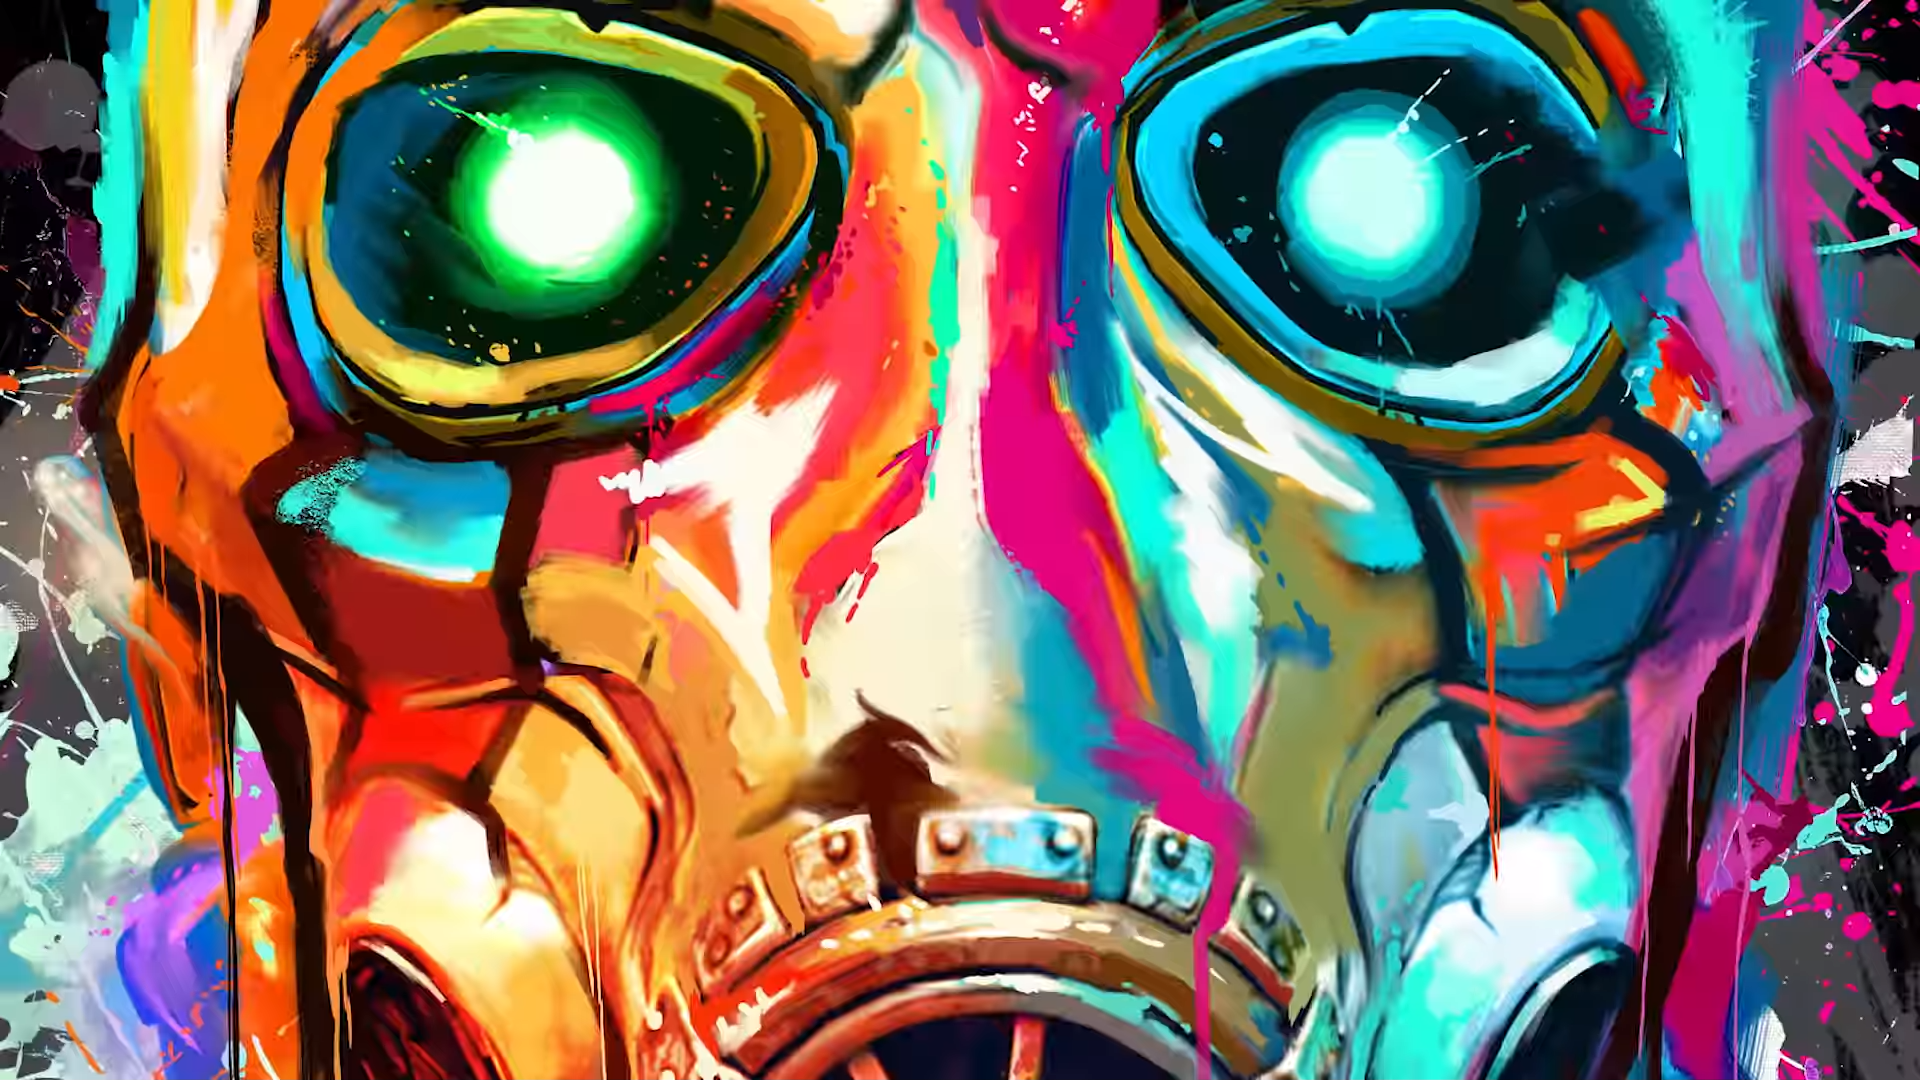 Borderlands 3 Colorful Psycho Mask From Trailer